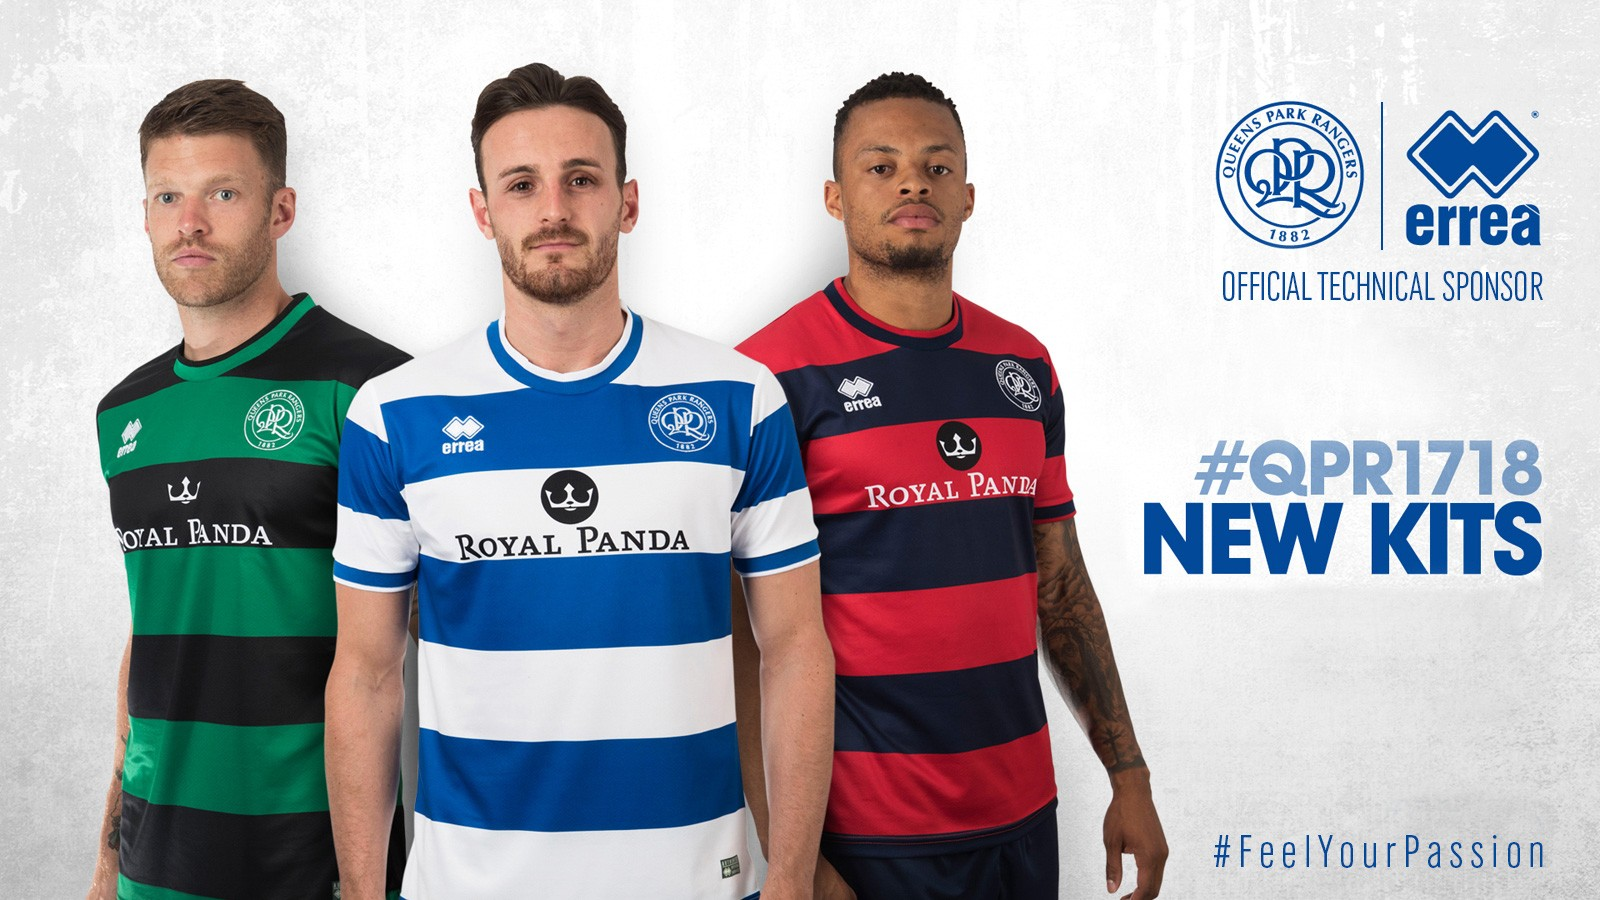 Erreà and Queens Park Rangers FC present the new kits for the coming season 2017-2018